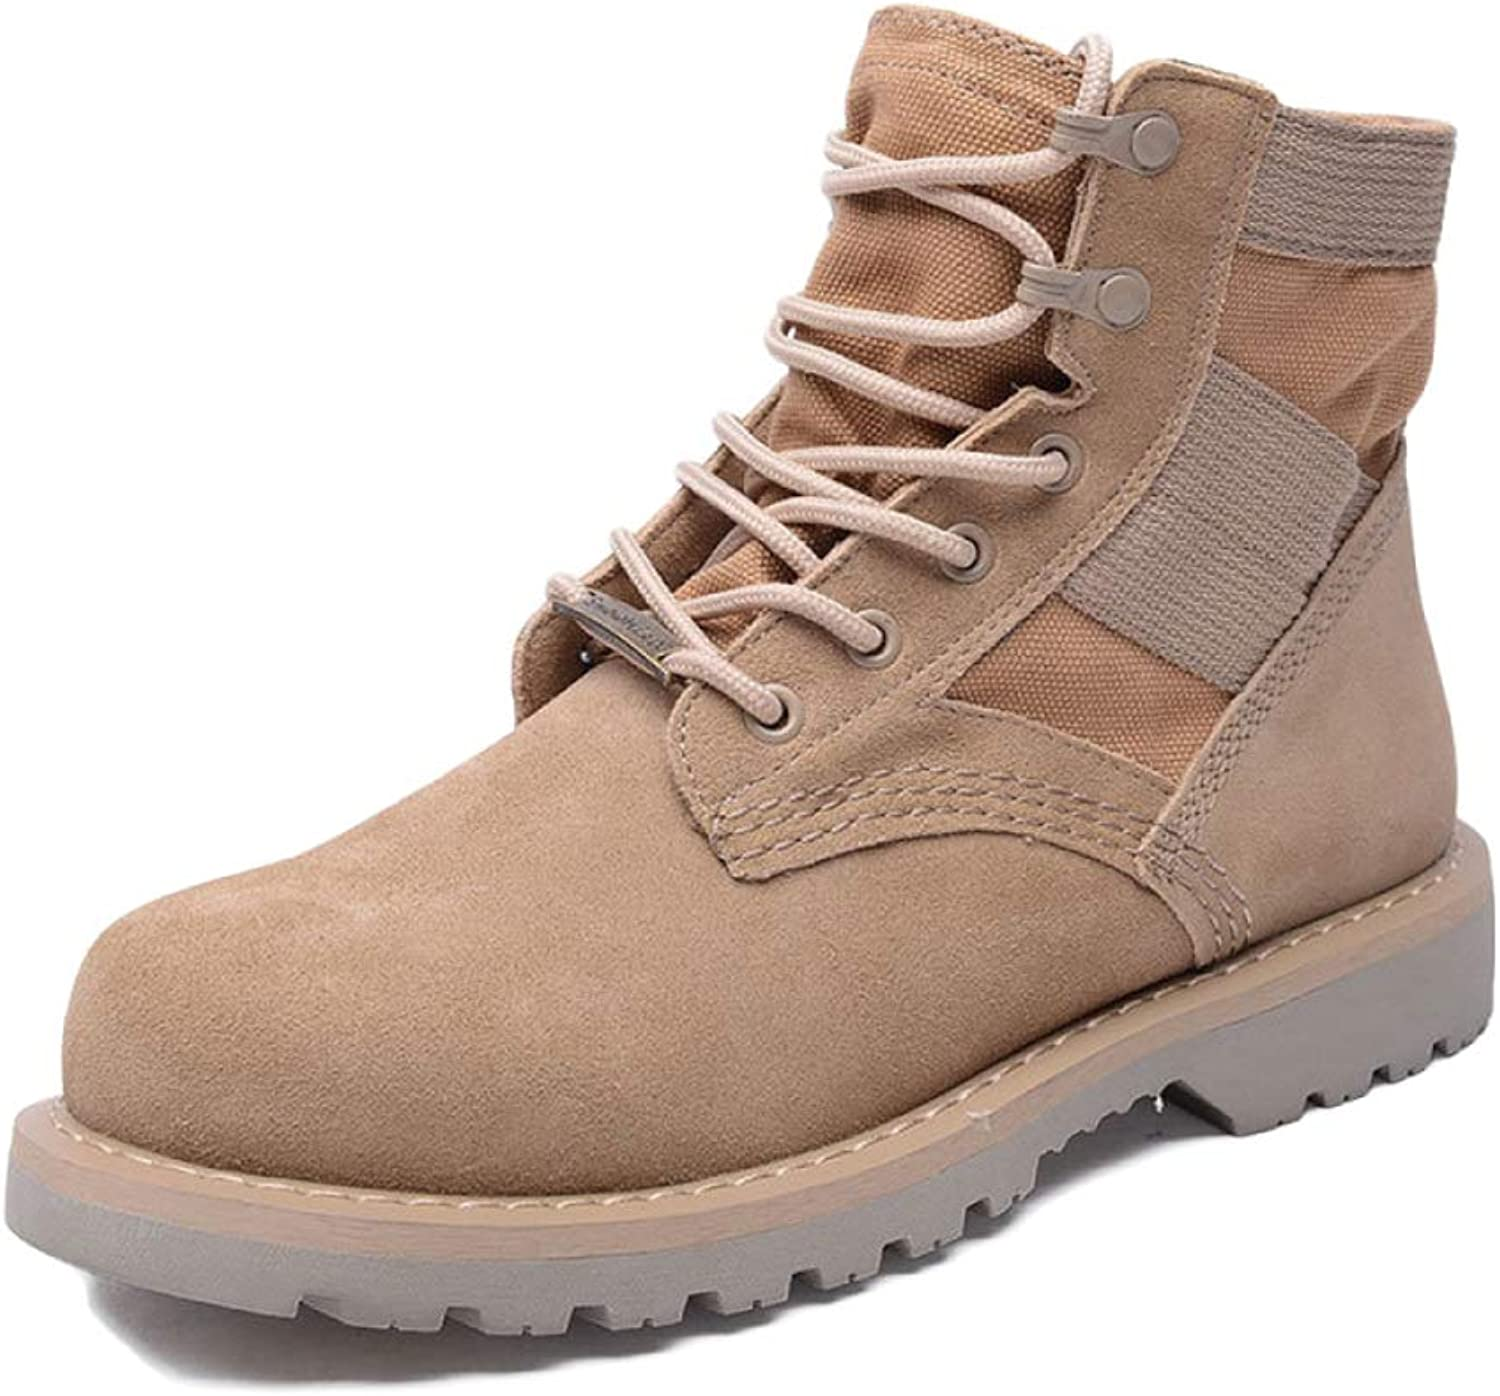 Men's Boots Adult Retro Martin Boots Leather Slip Breathable Desert Boots Work Boots Fighting Snow Boots